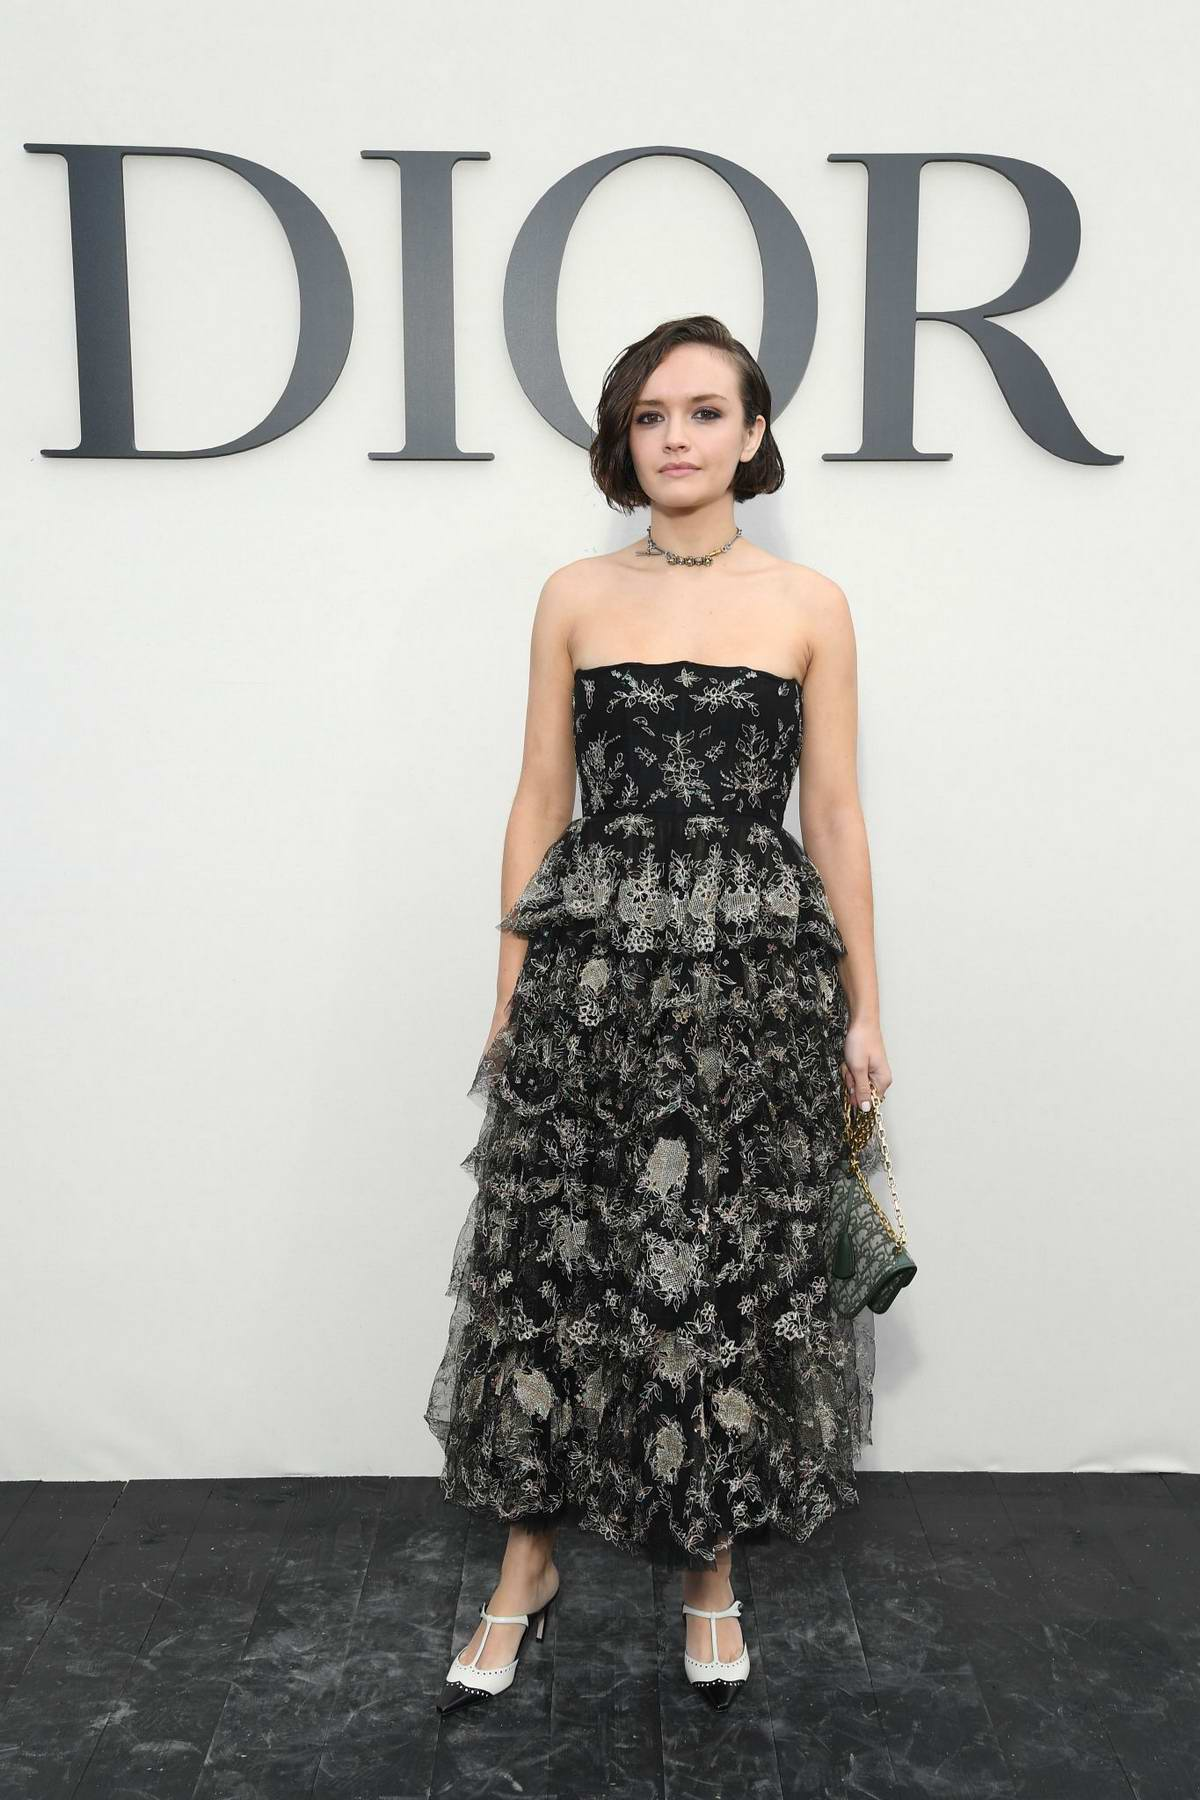 Olivia Cooke attends the Christian Dior Show during Paris Fashion Week in Paris, France